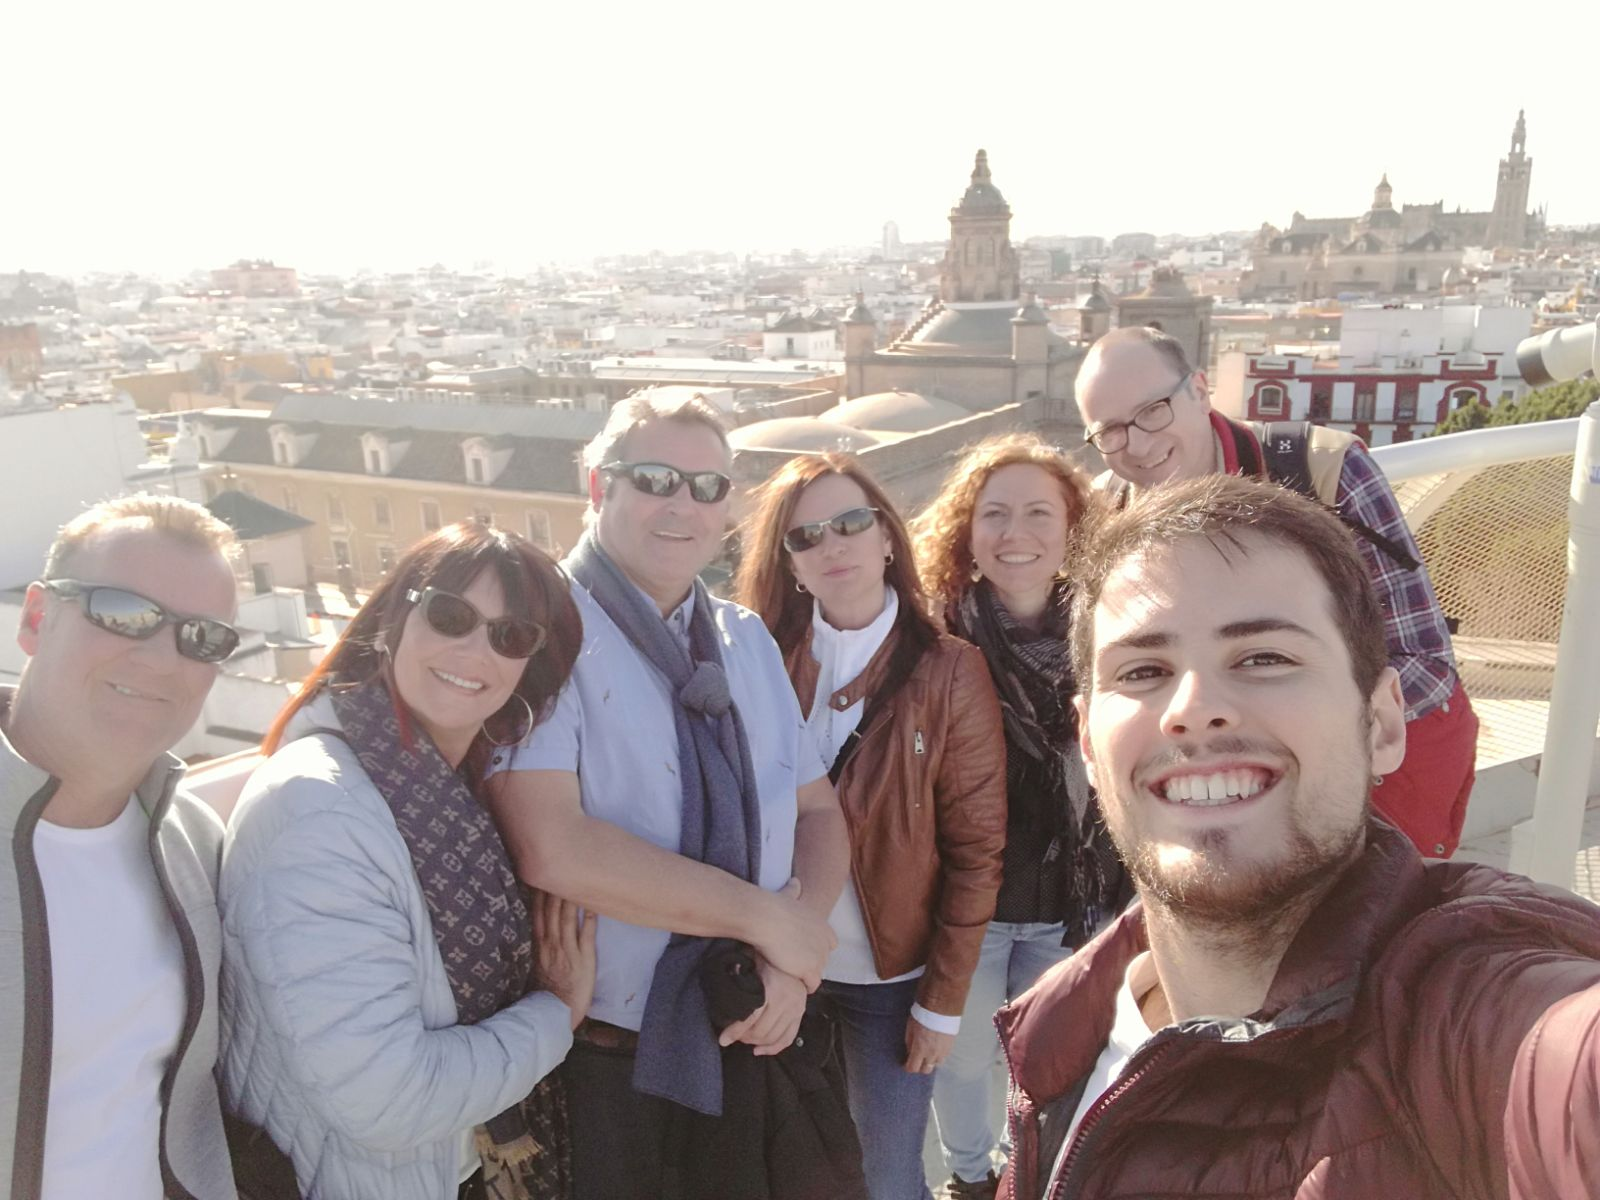 top activities for large groups in seville, best corporate activities in seville, 10 best corporate & group activities in Seville, top 10 group activities in seville